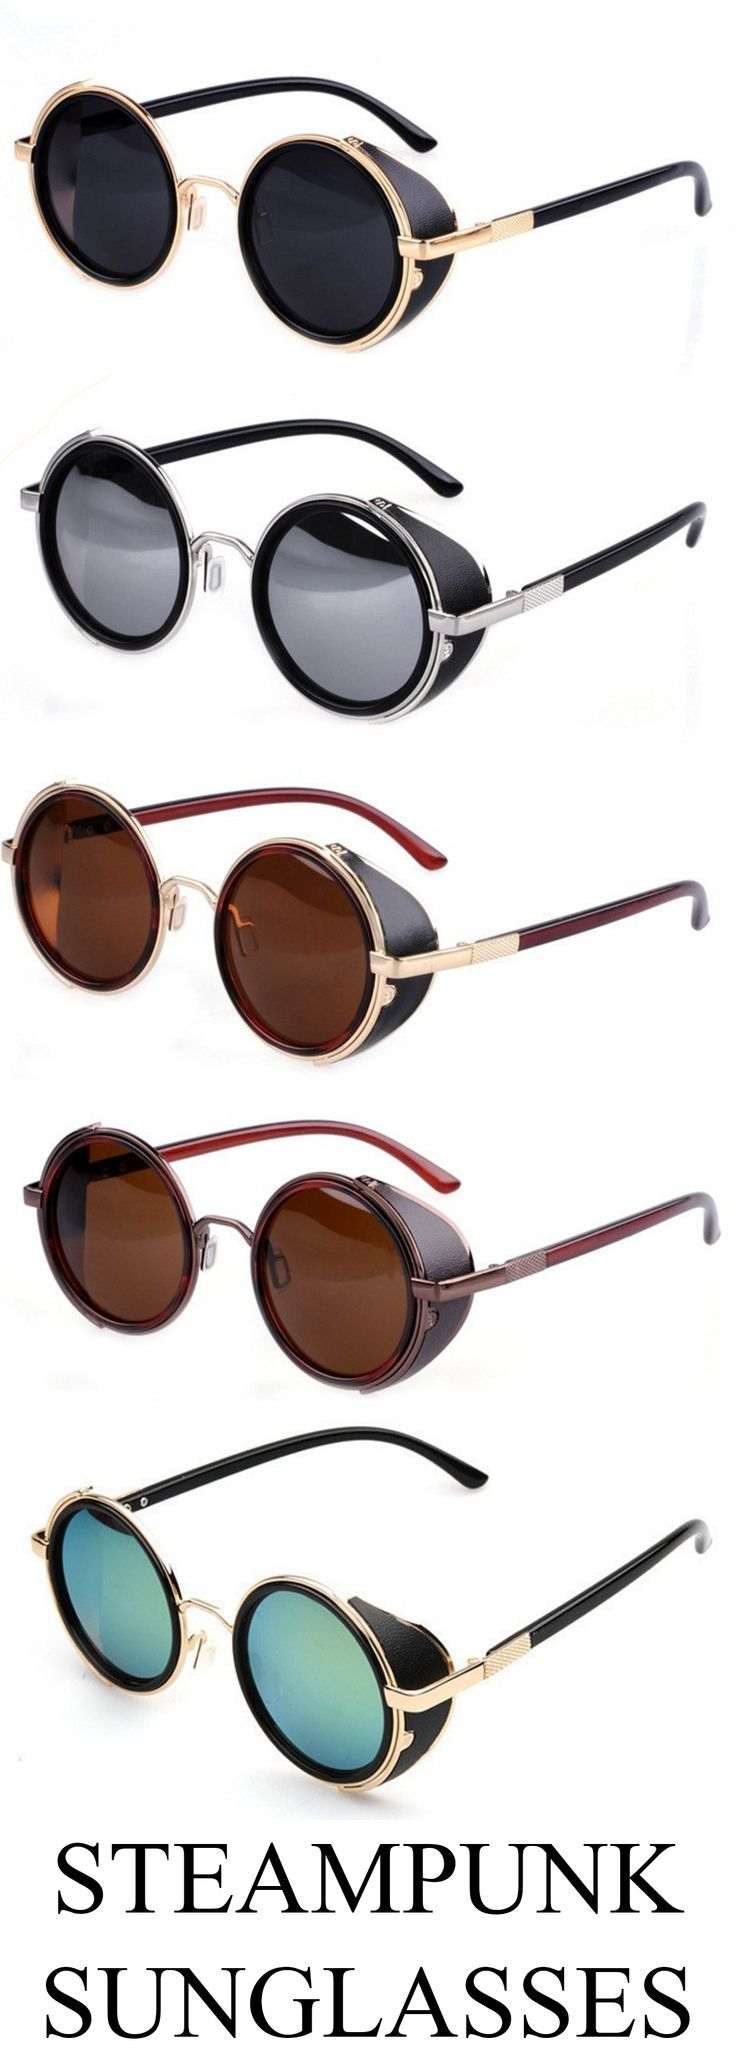 Get These Awesome Steampunk Glasses! Not Available In Stores! Get Them Here: https://steampunk-heaven.com/product/steampunk-classic-frame-sunglasses/